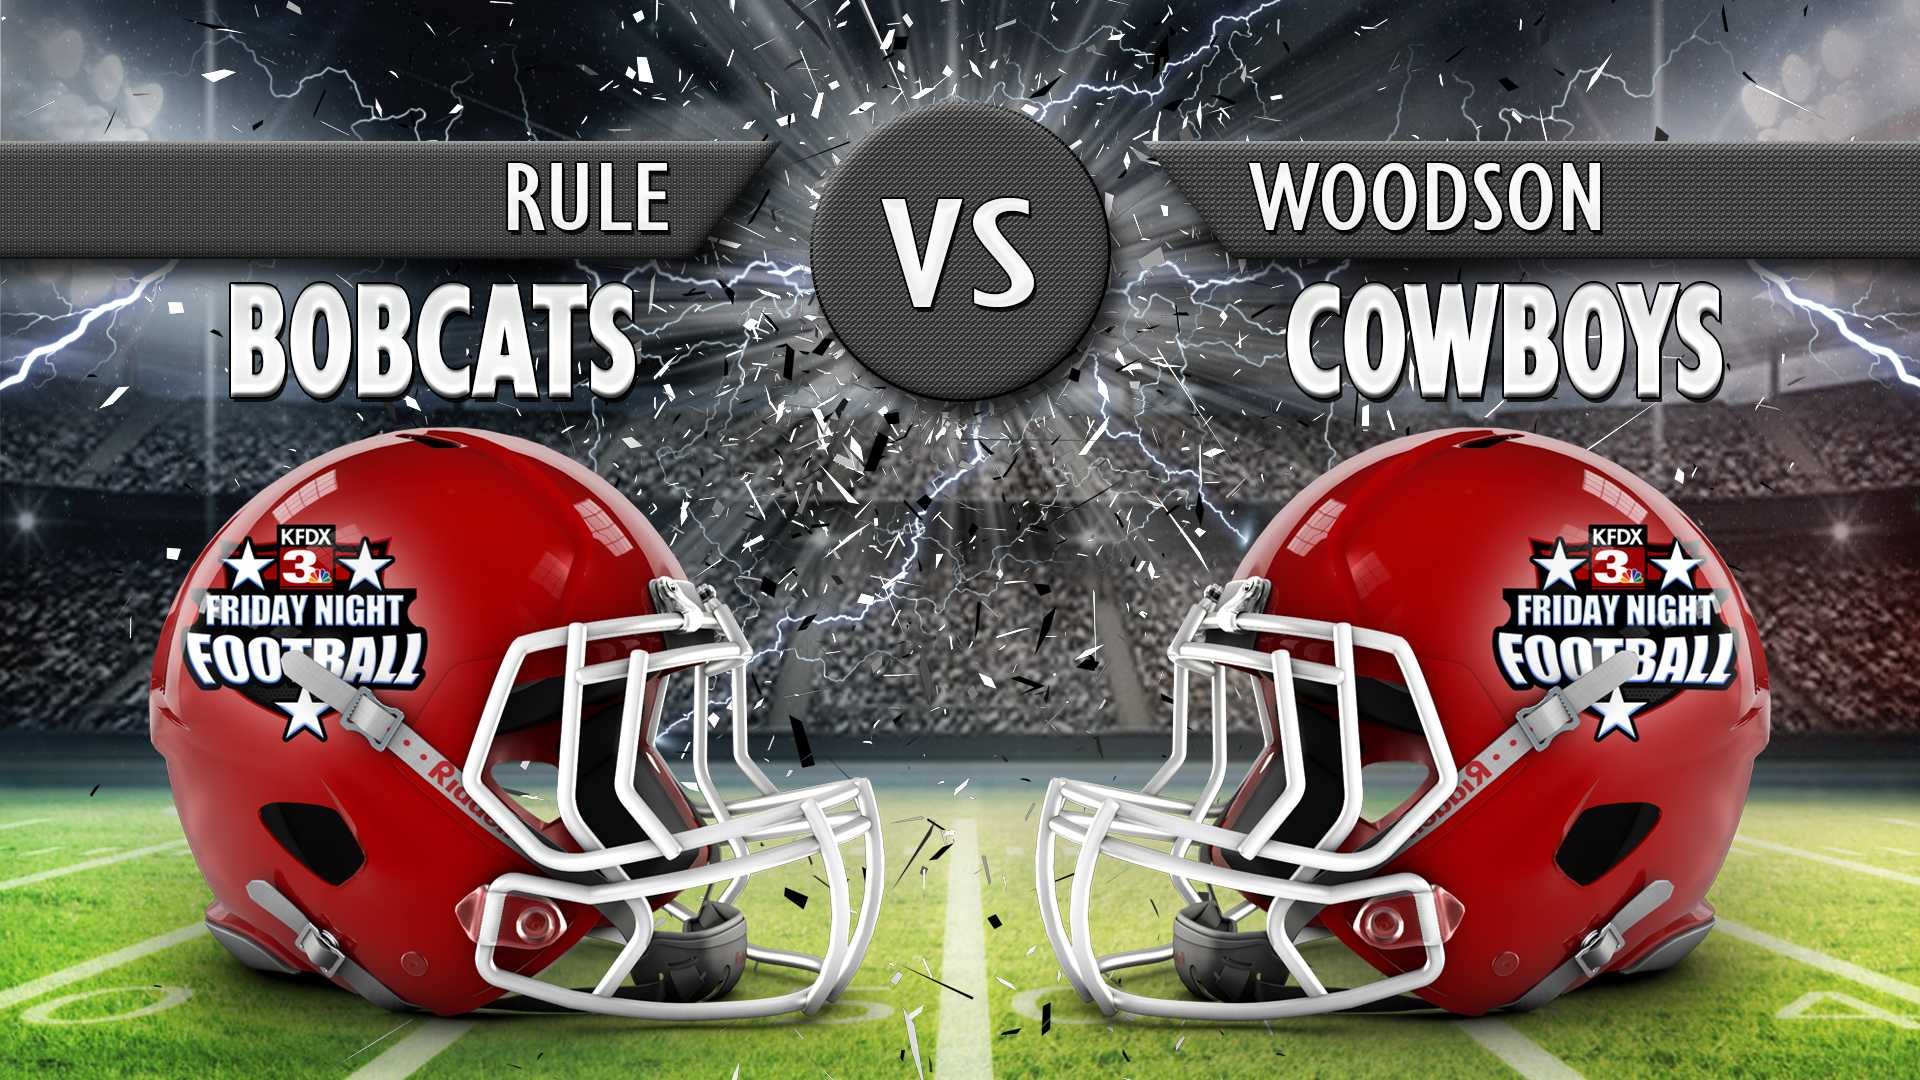 RULE VS WOODSON_1538144618115.jpg.jpg